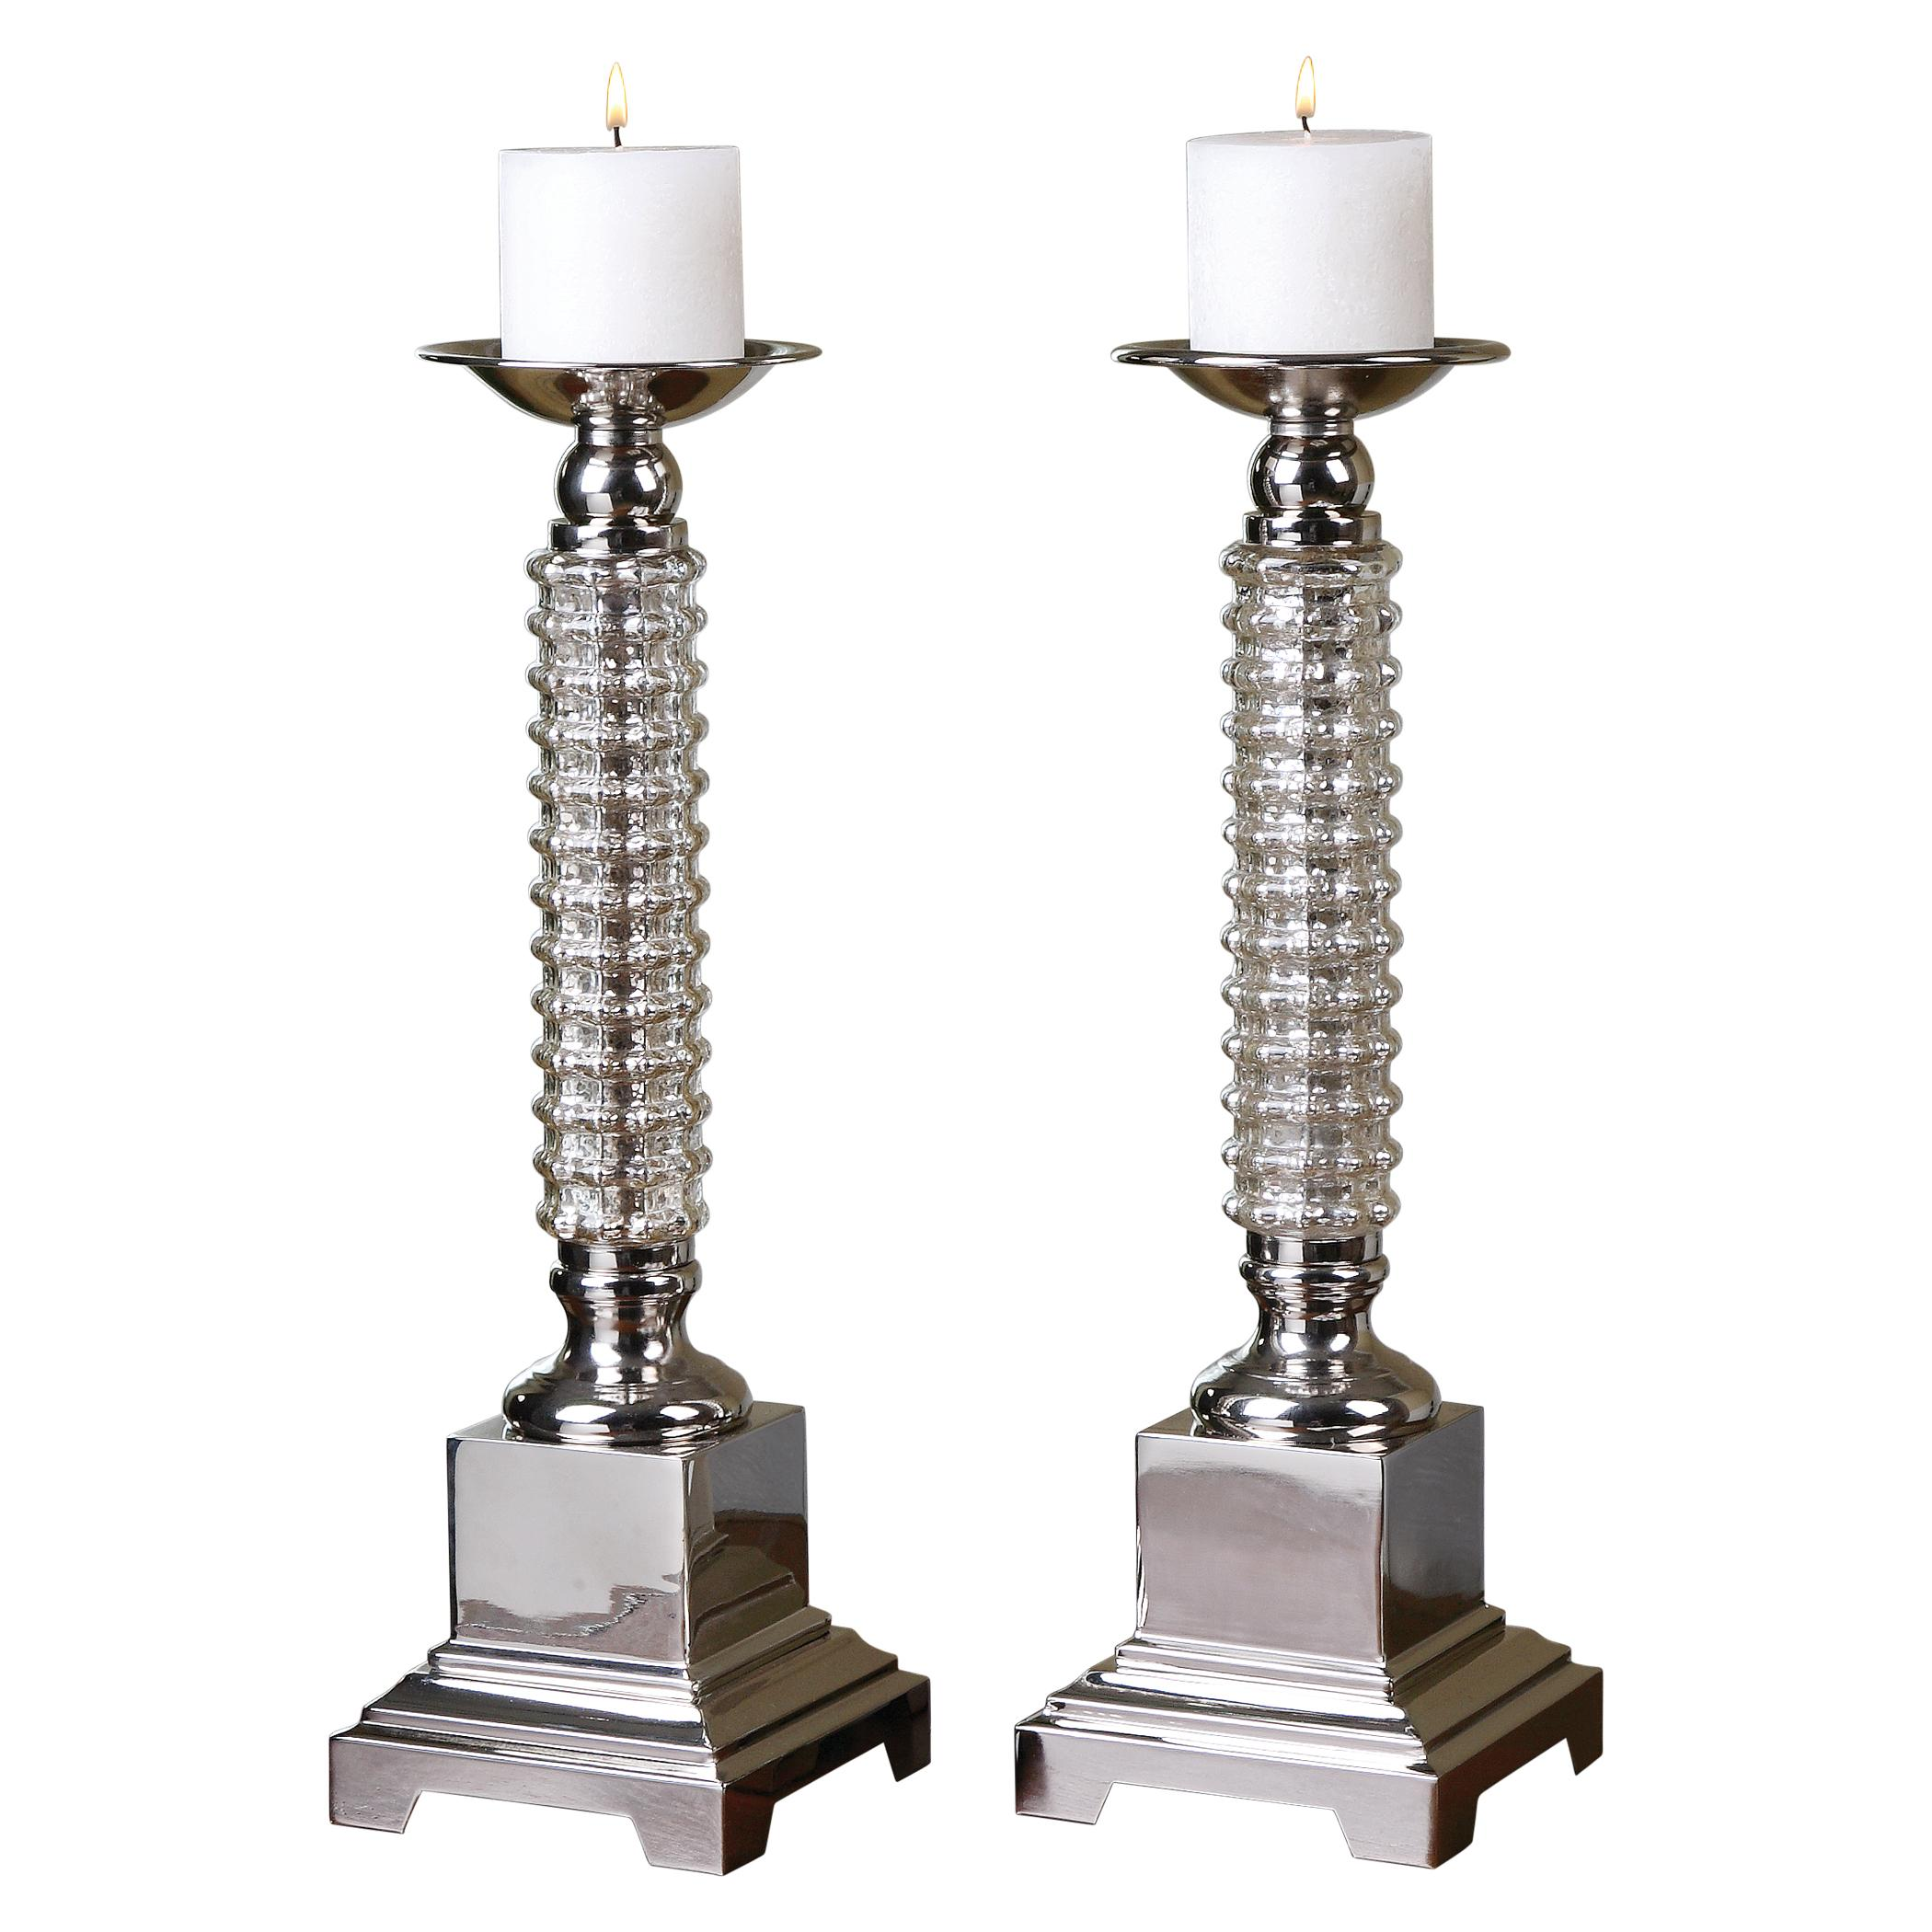 Uttermost Accessories Ardex Mercury Glass Candleholders, Set of  2 - Item Number: 19840